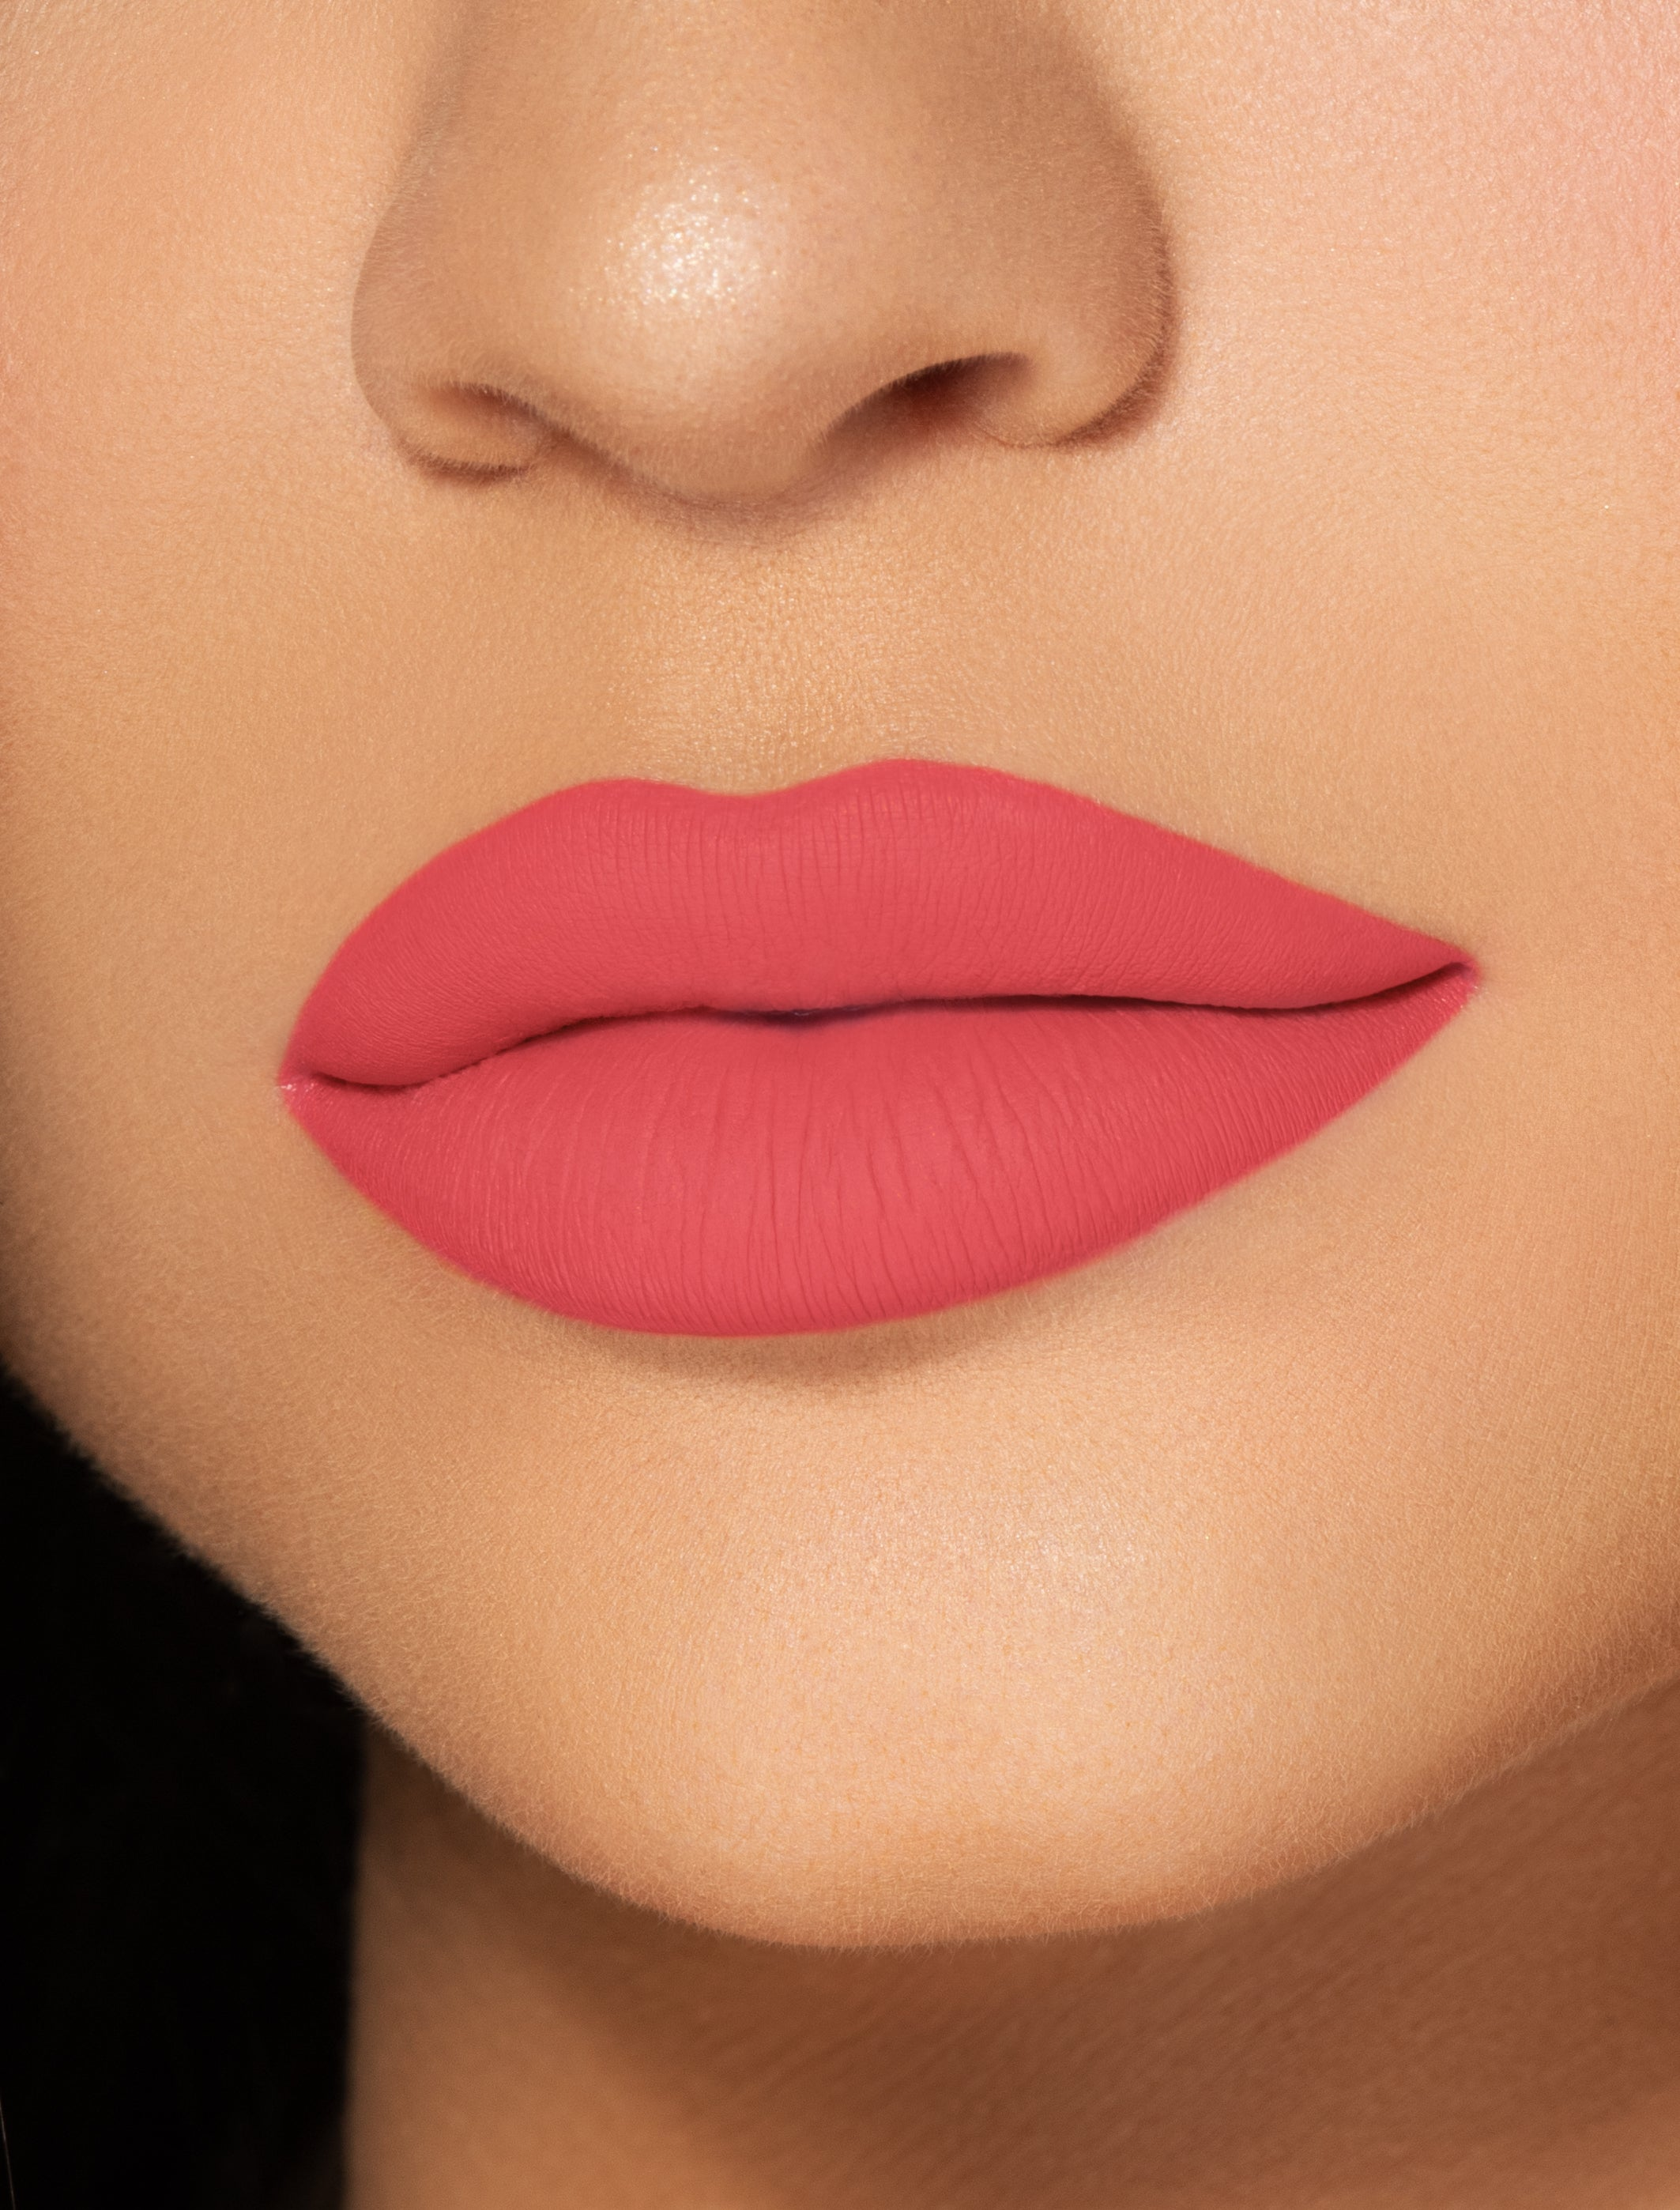 Baby Girl | Matte Liquid Lipstick - Kylie Cosmetics by Kylie Jenner